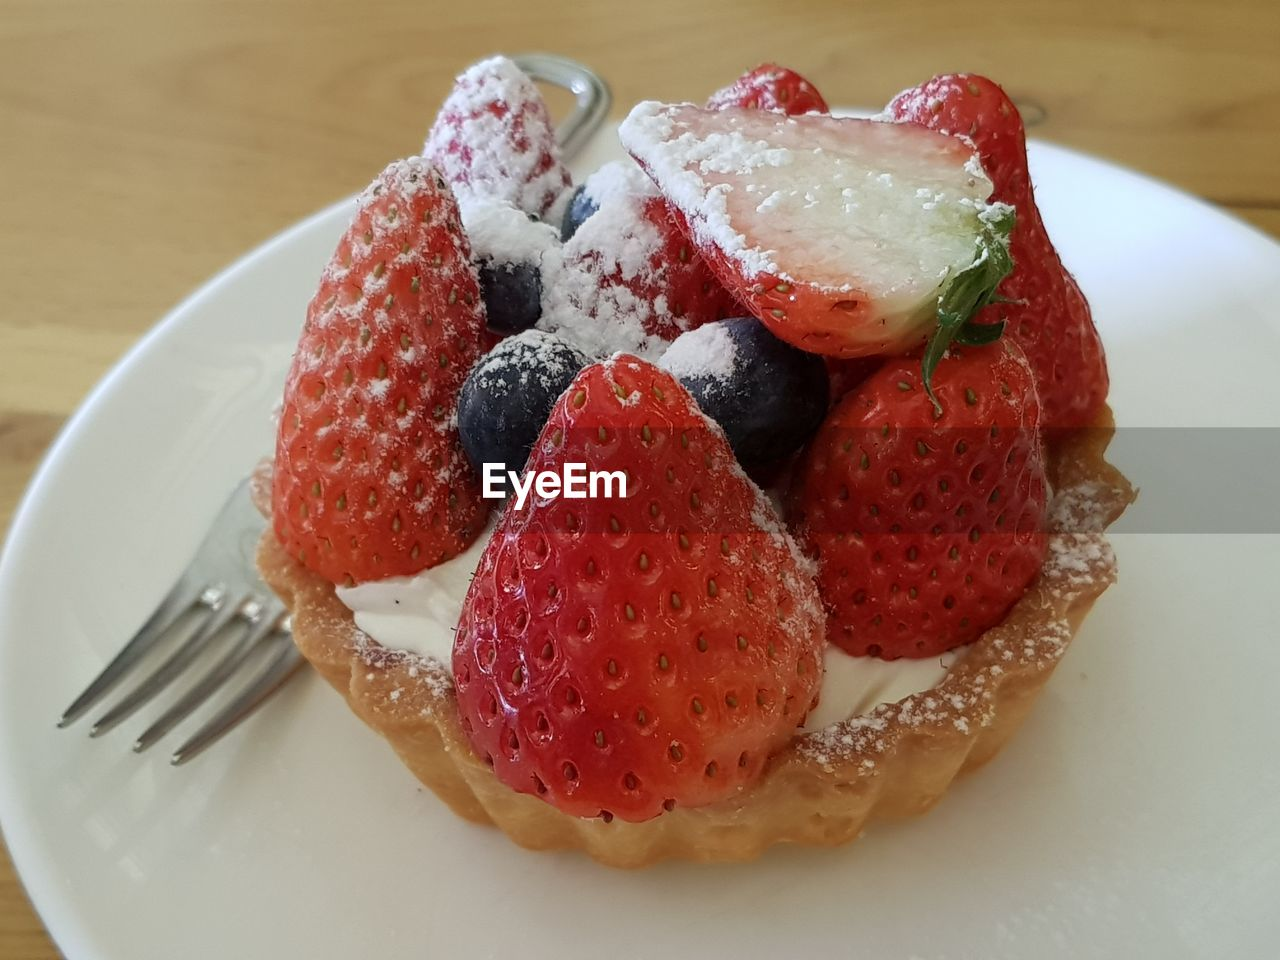 food and drink, food, berry fruit, sweet food, freshness, plate, dessert, fruit, sweet, strawberry, still life, temptation, indulgence, ready-to-eat, fork, close-up, eating utensil, healthy eating, indoors, cake, no people, tart - dessert, ripe, snack, fruitcake